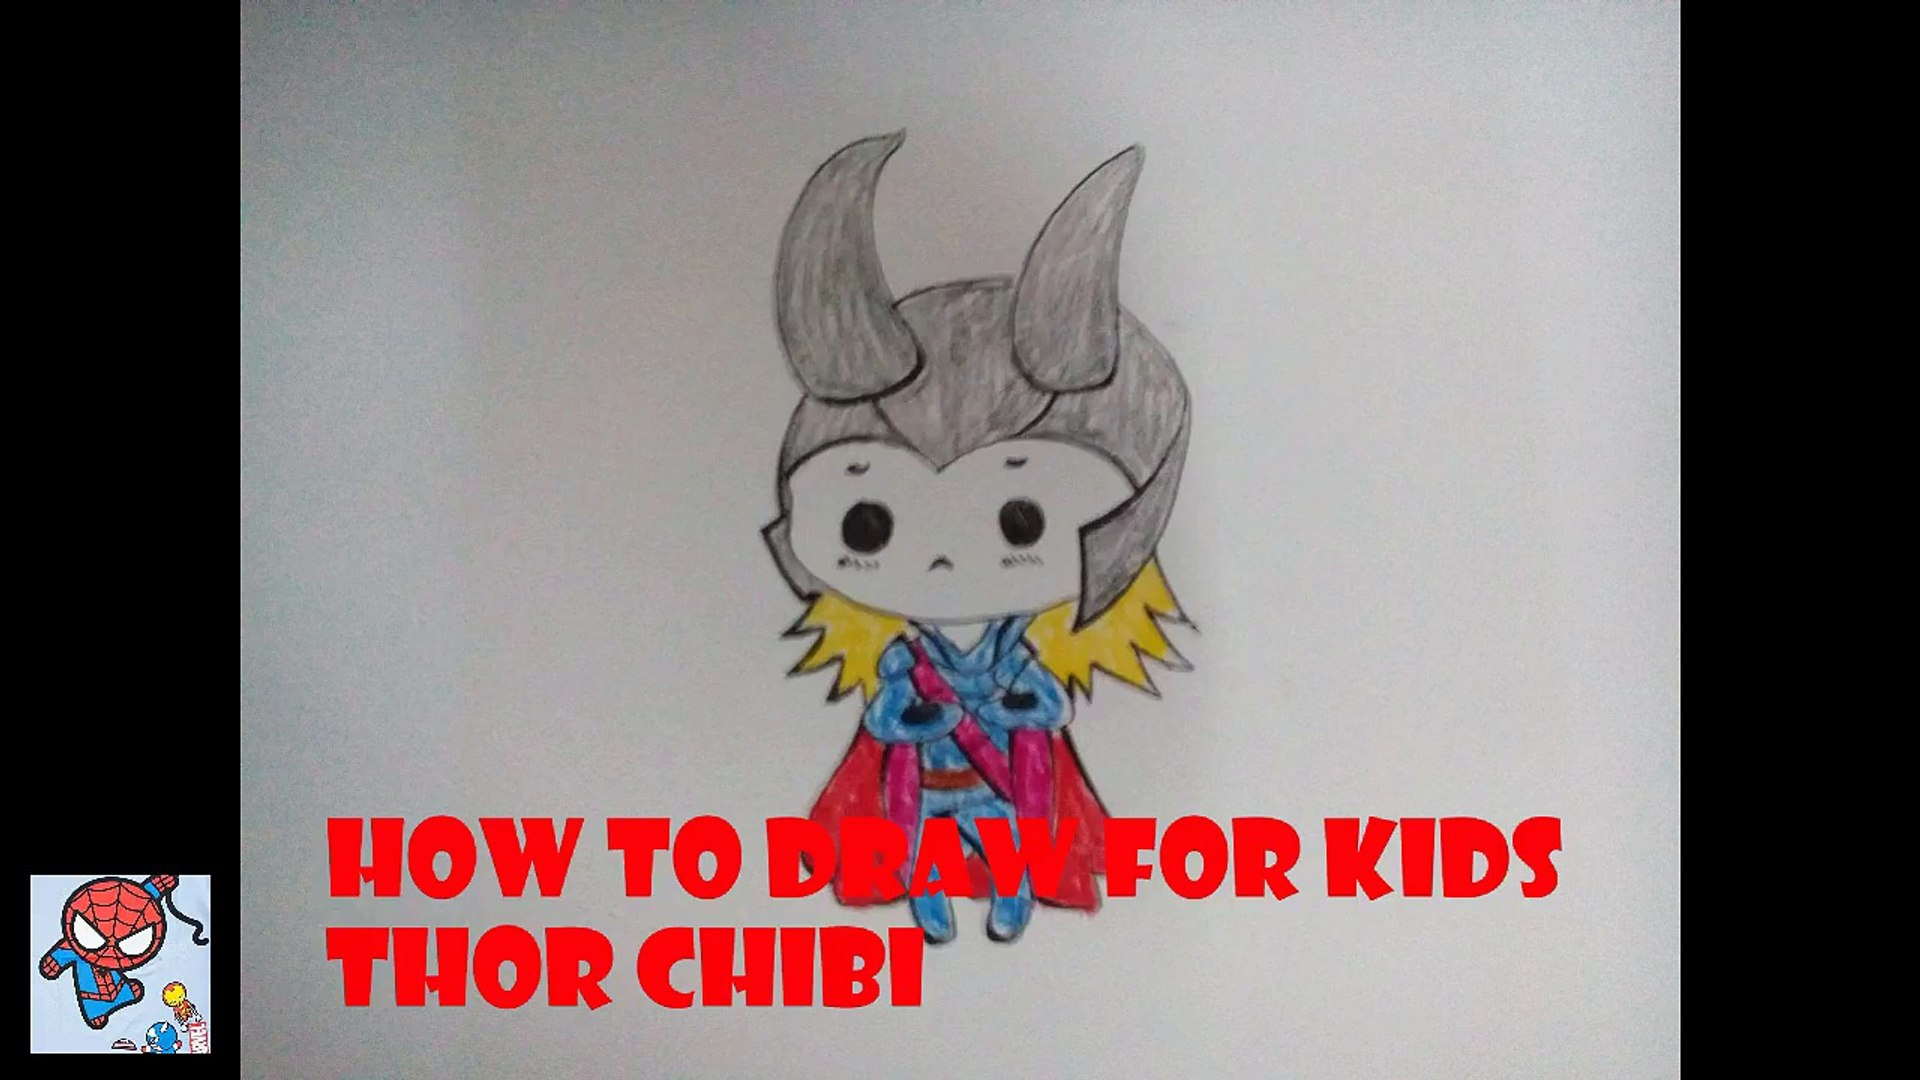 How to draw Thor - How to draw for kids